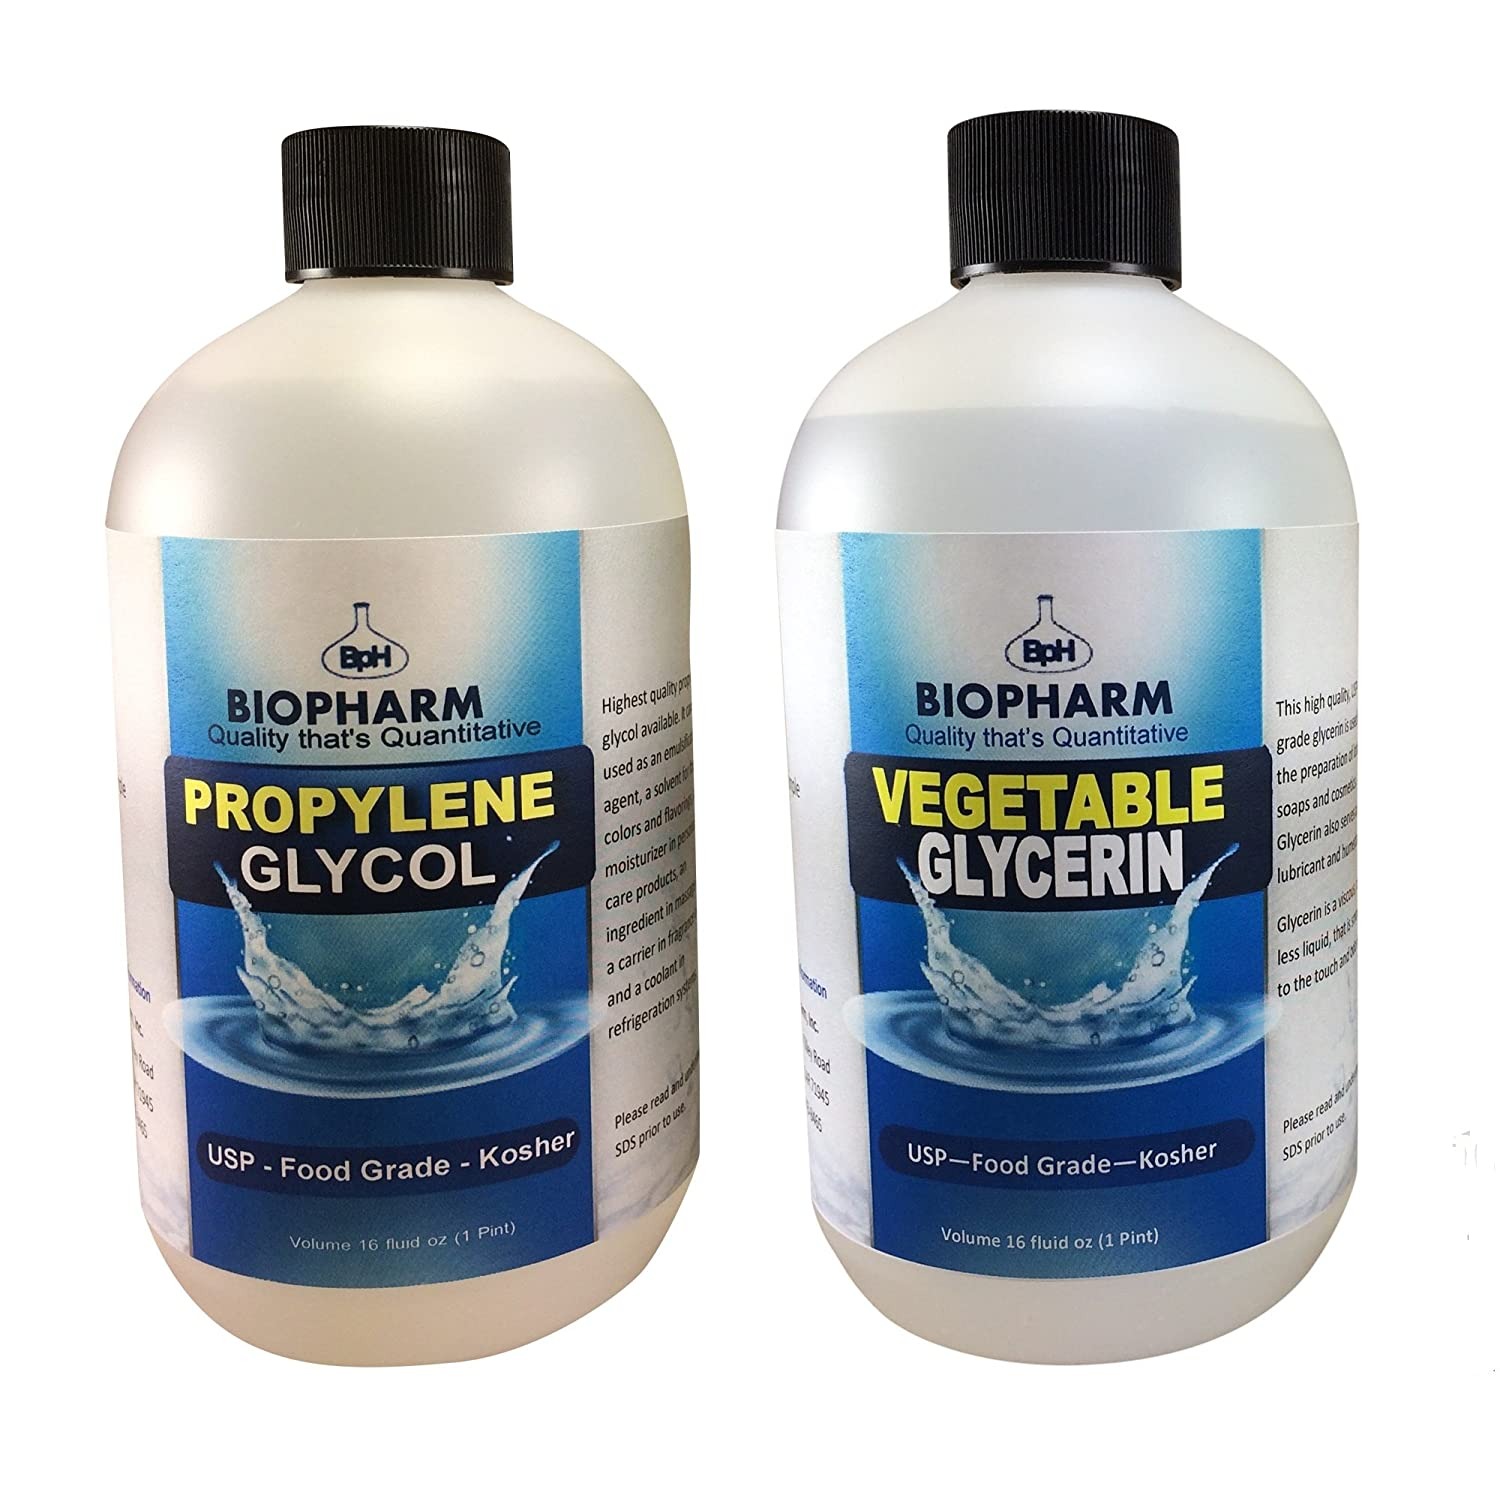 Propylene Glycol and Vegetable Glycerin 2-Pack 500 mL USP-Kosher-Food Grade